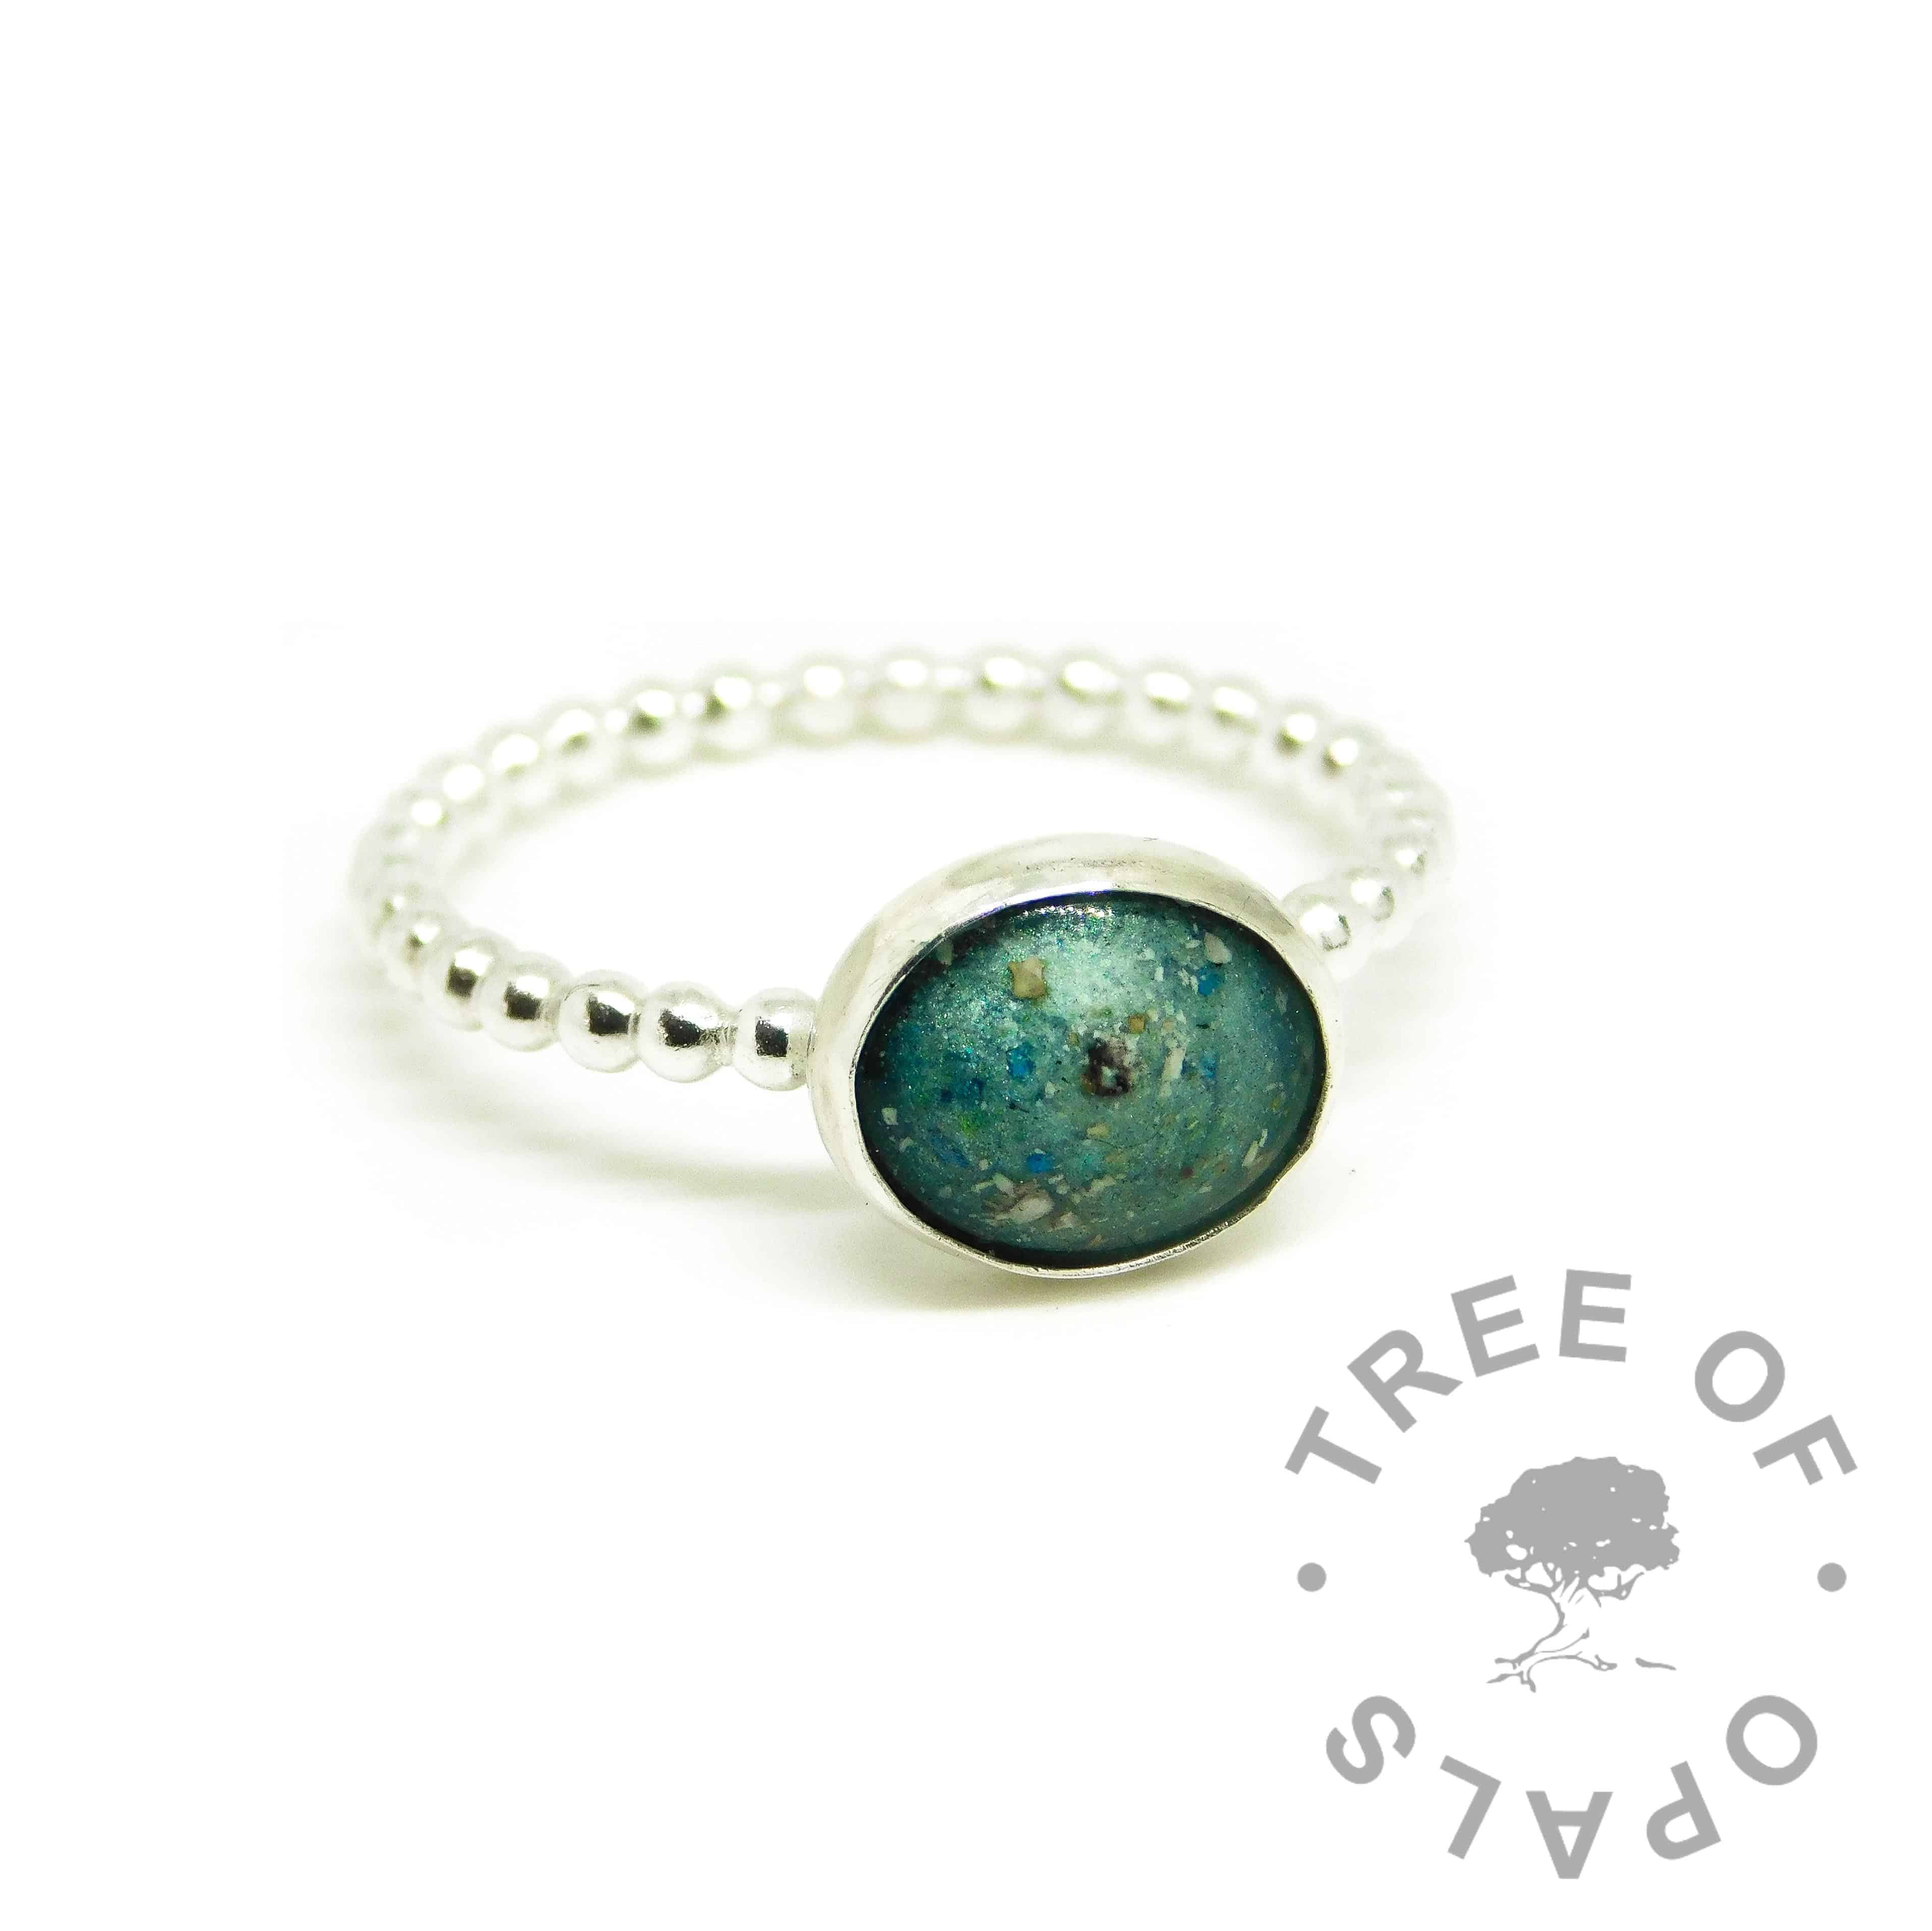 teal ashes ring, mermaid teal resin sparkle mix, bubble wire Argentium silver band